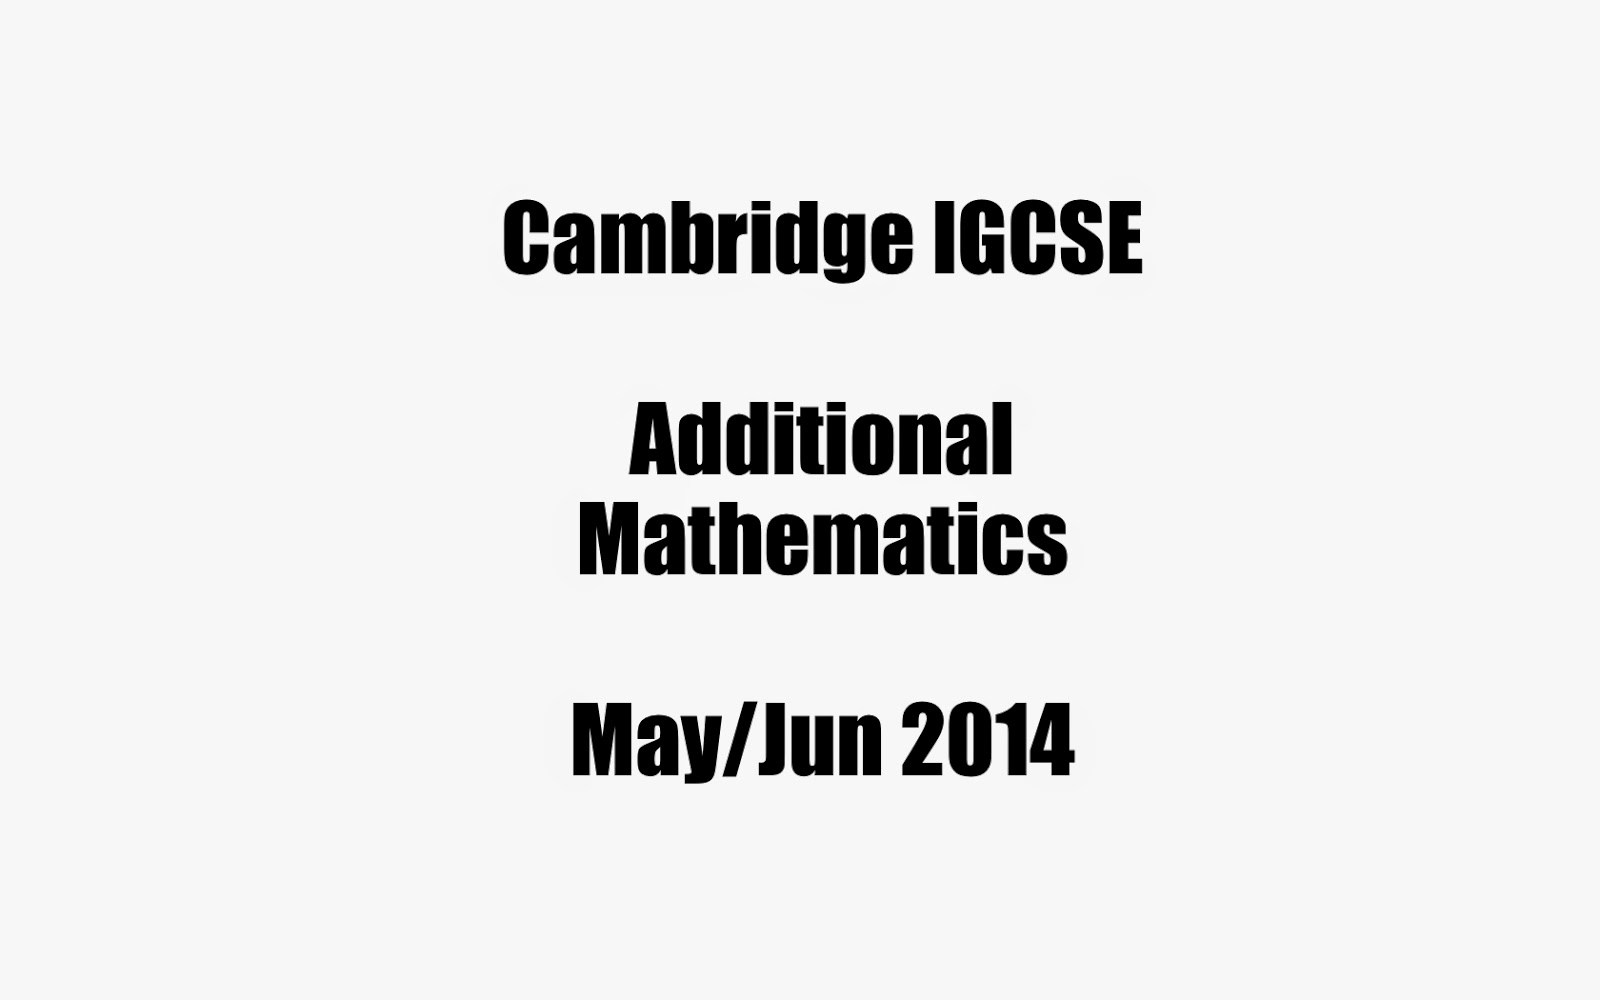 Igcse cambridge grade 9 june 2010 physics exam paper 6